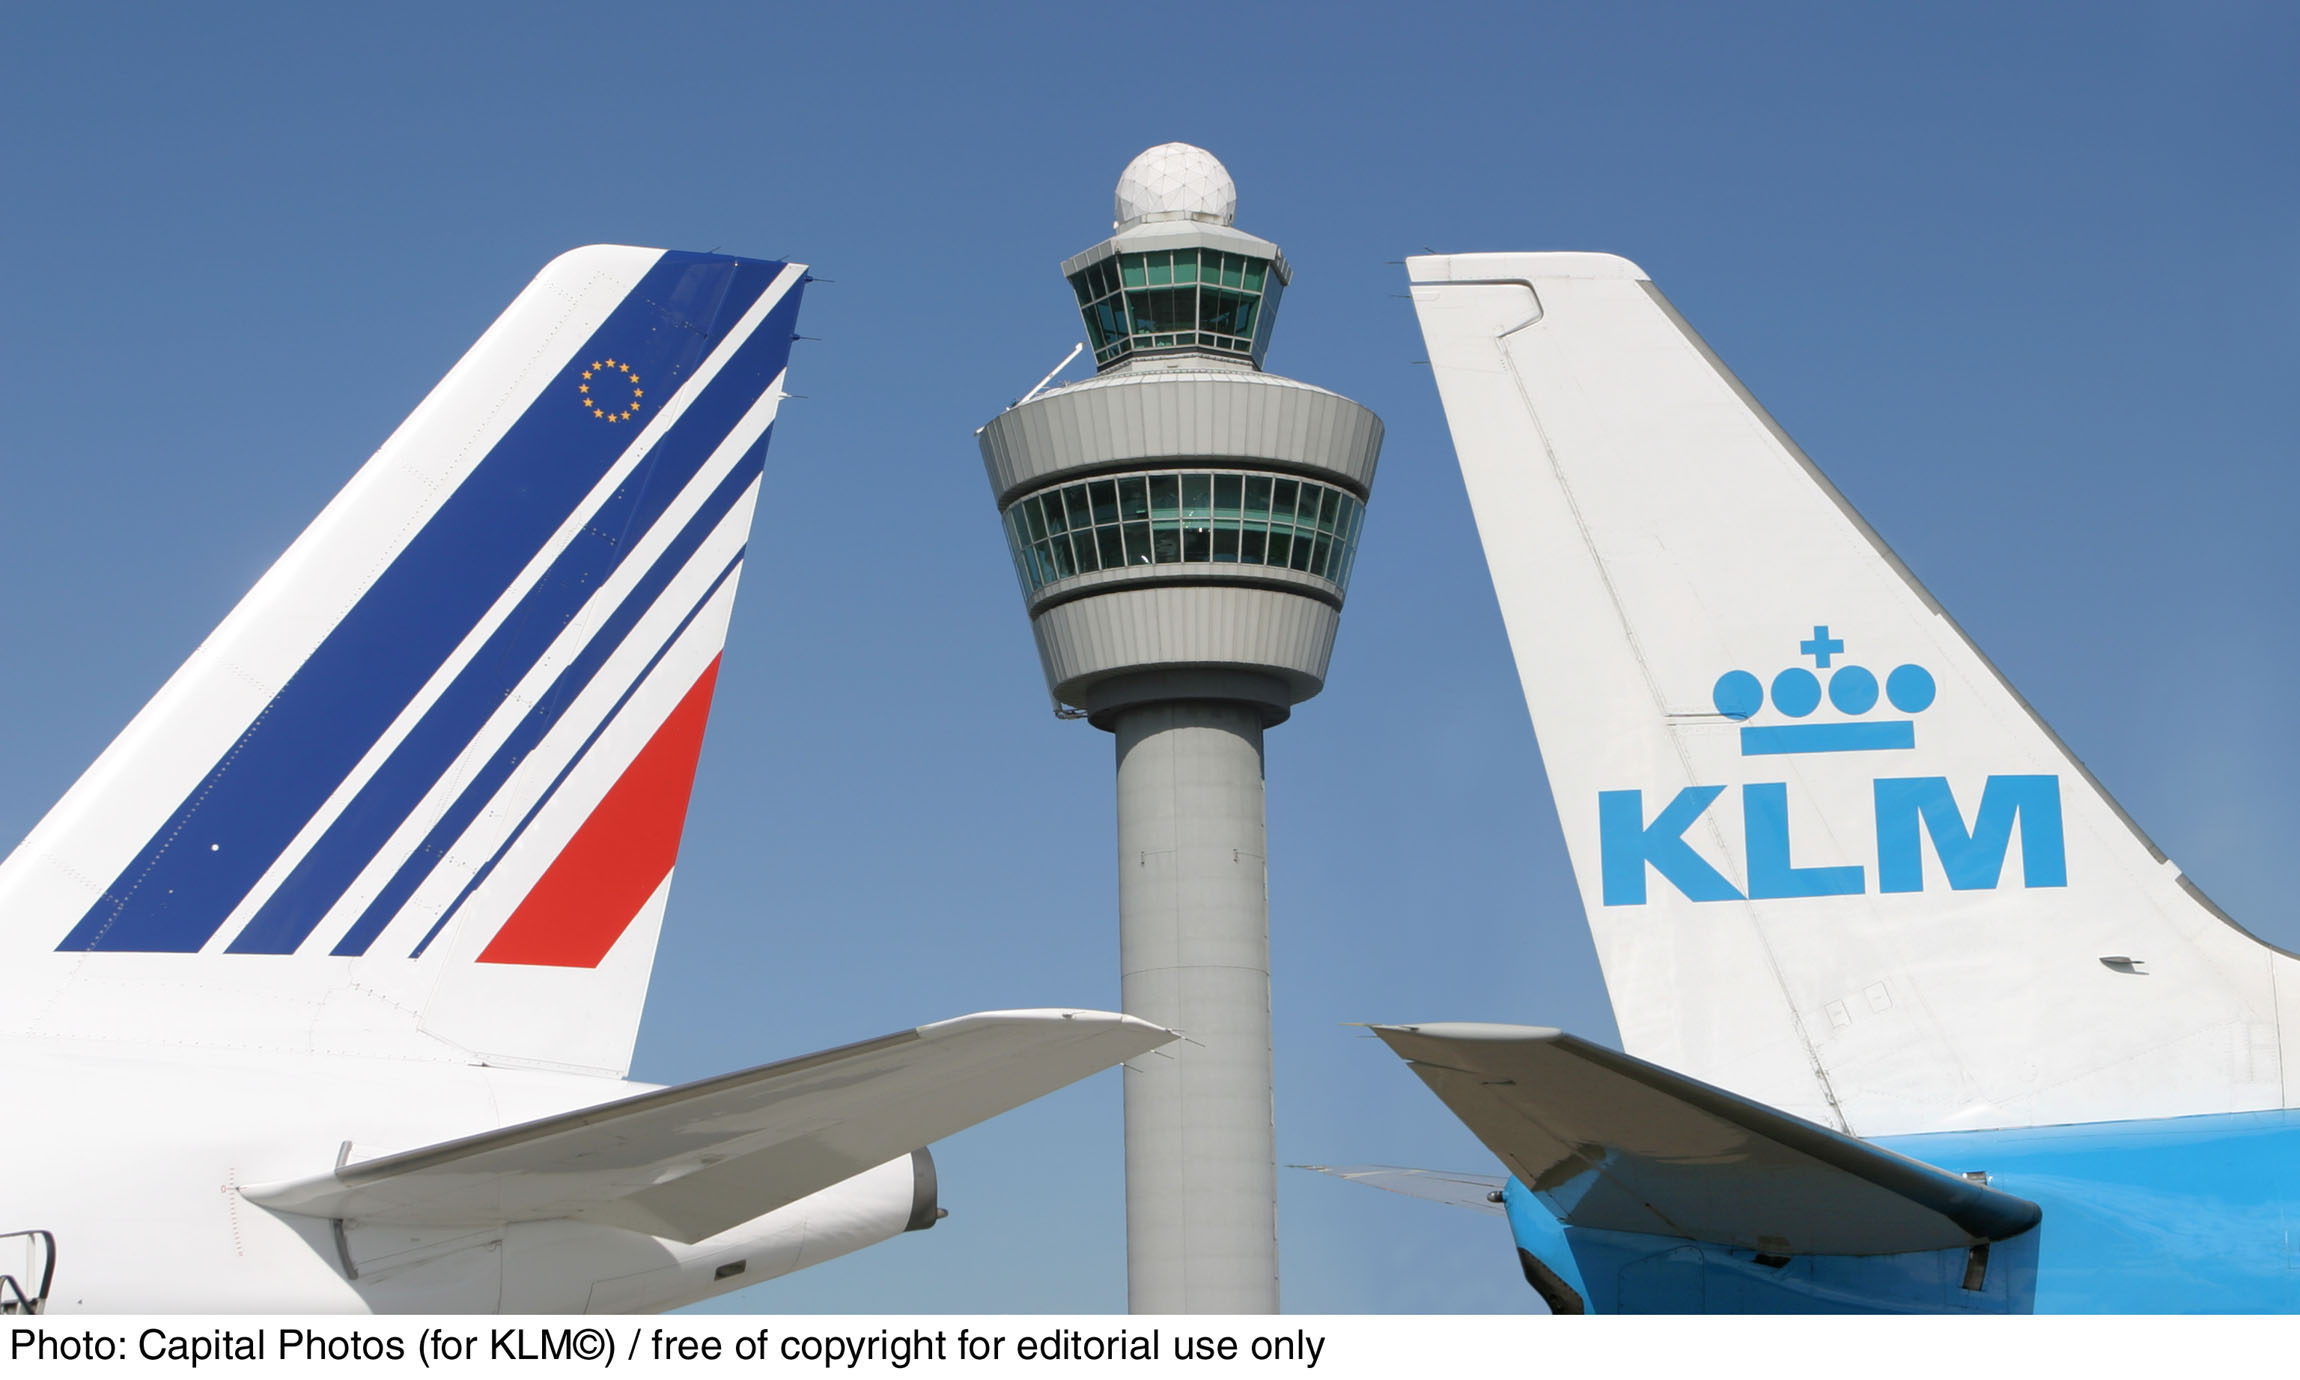 AirFrance - KLM Tails